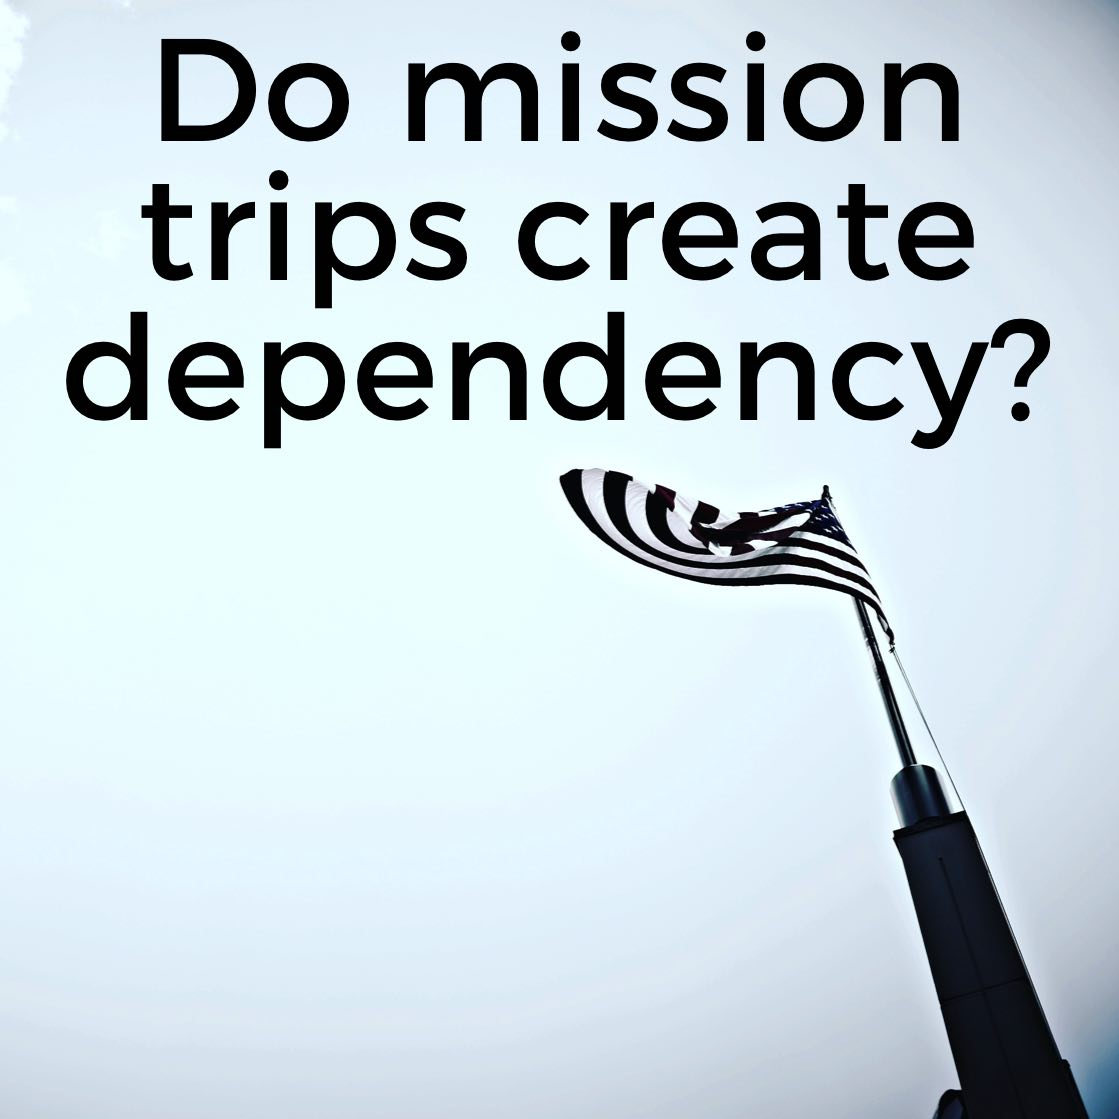 Episode 34: Do mission trips create dependency?